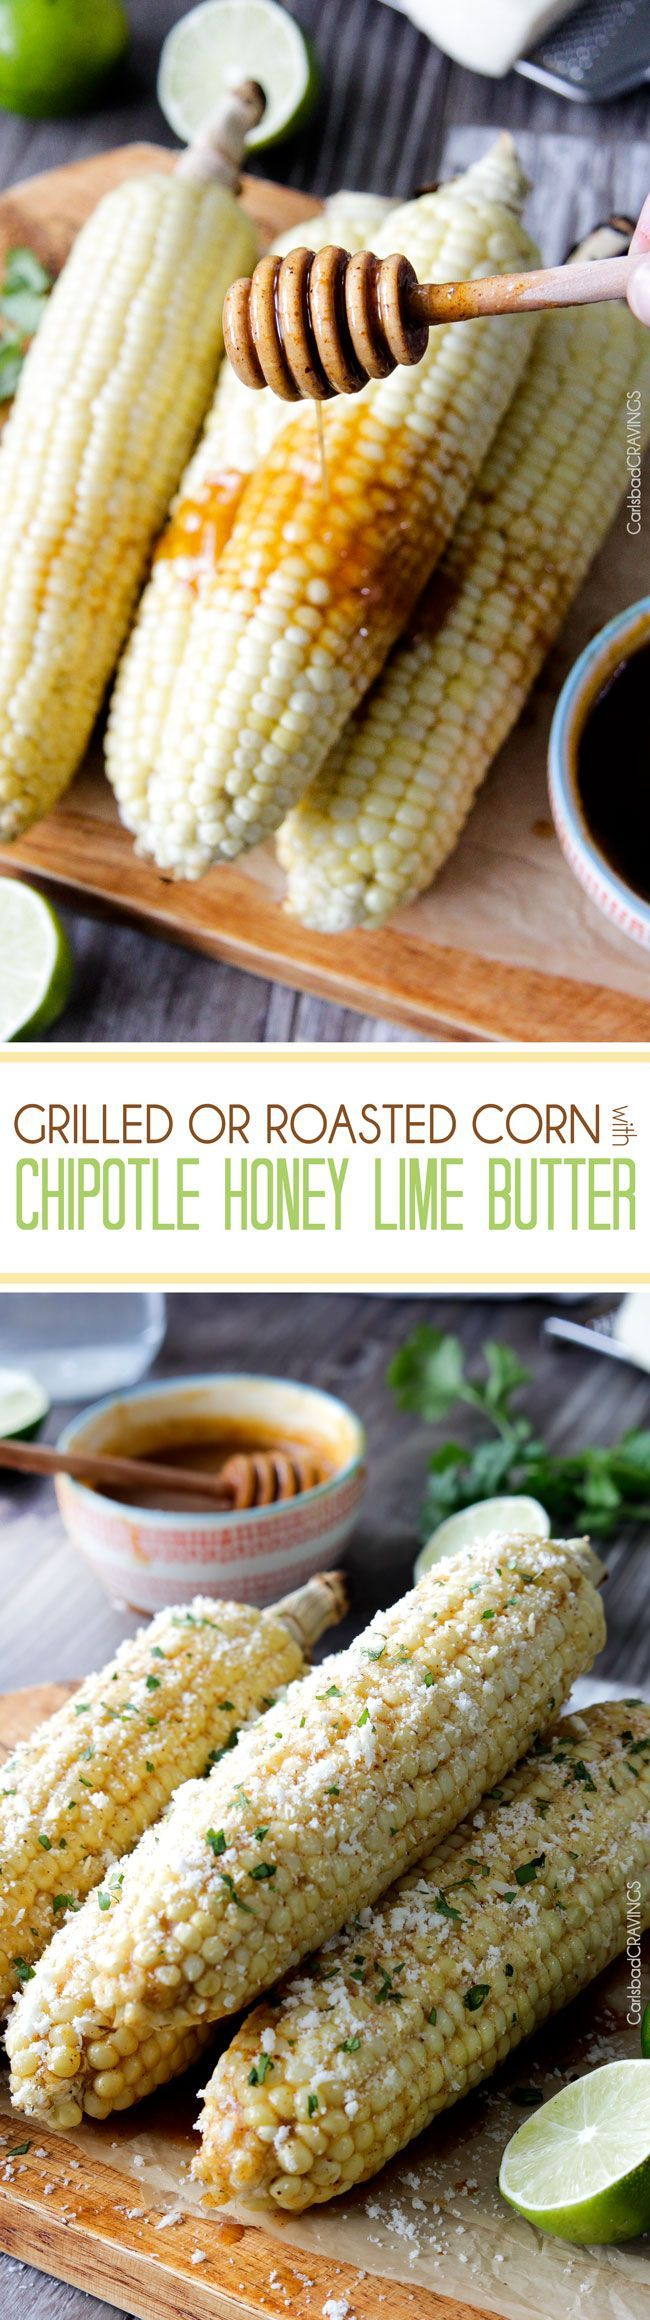 ... Lime Butter sprinkled with cilantro and cotija cheese! Perfect for the